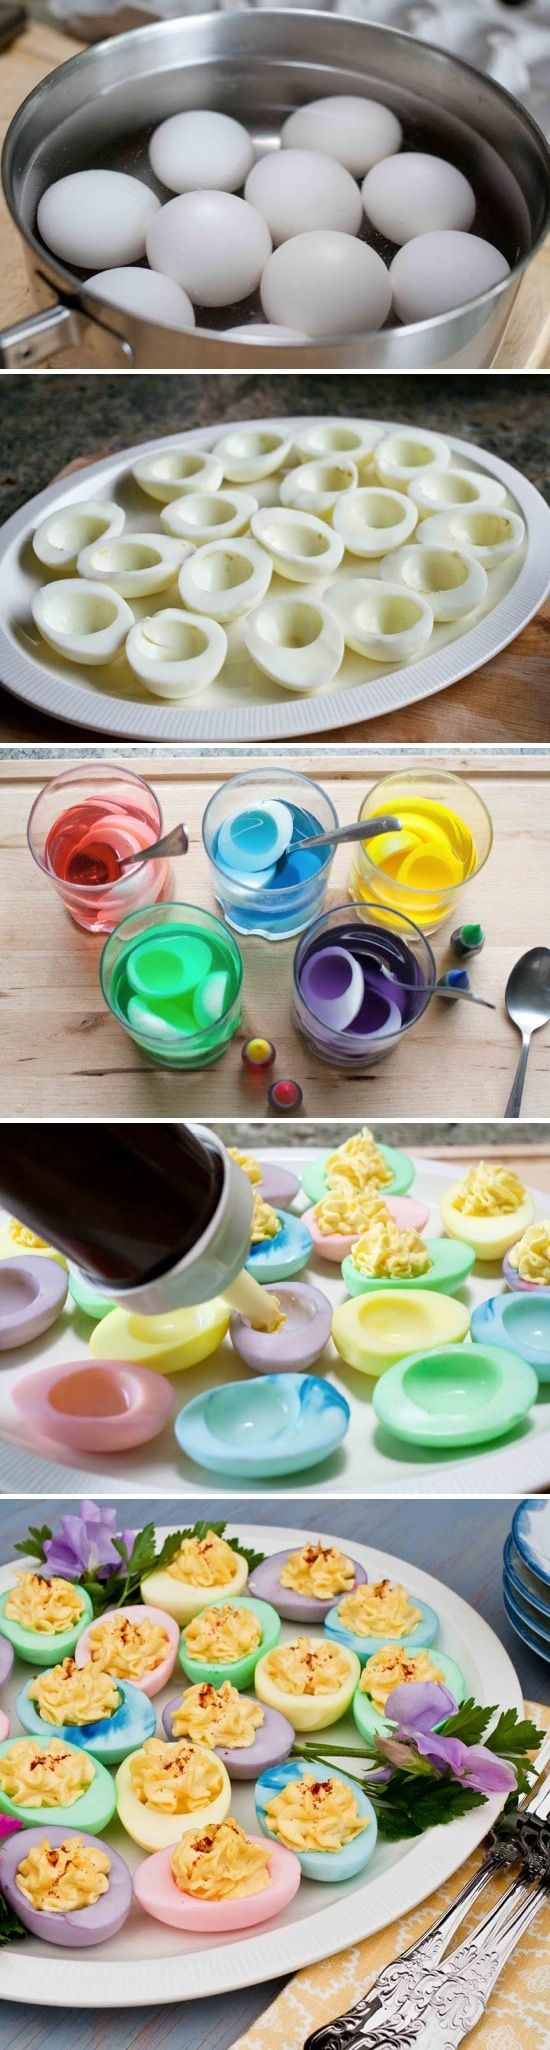 Tye Dyed boiled eggs. I'm making this for Friendsgiving this year.